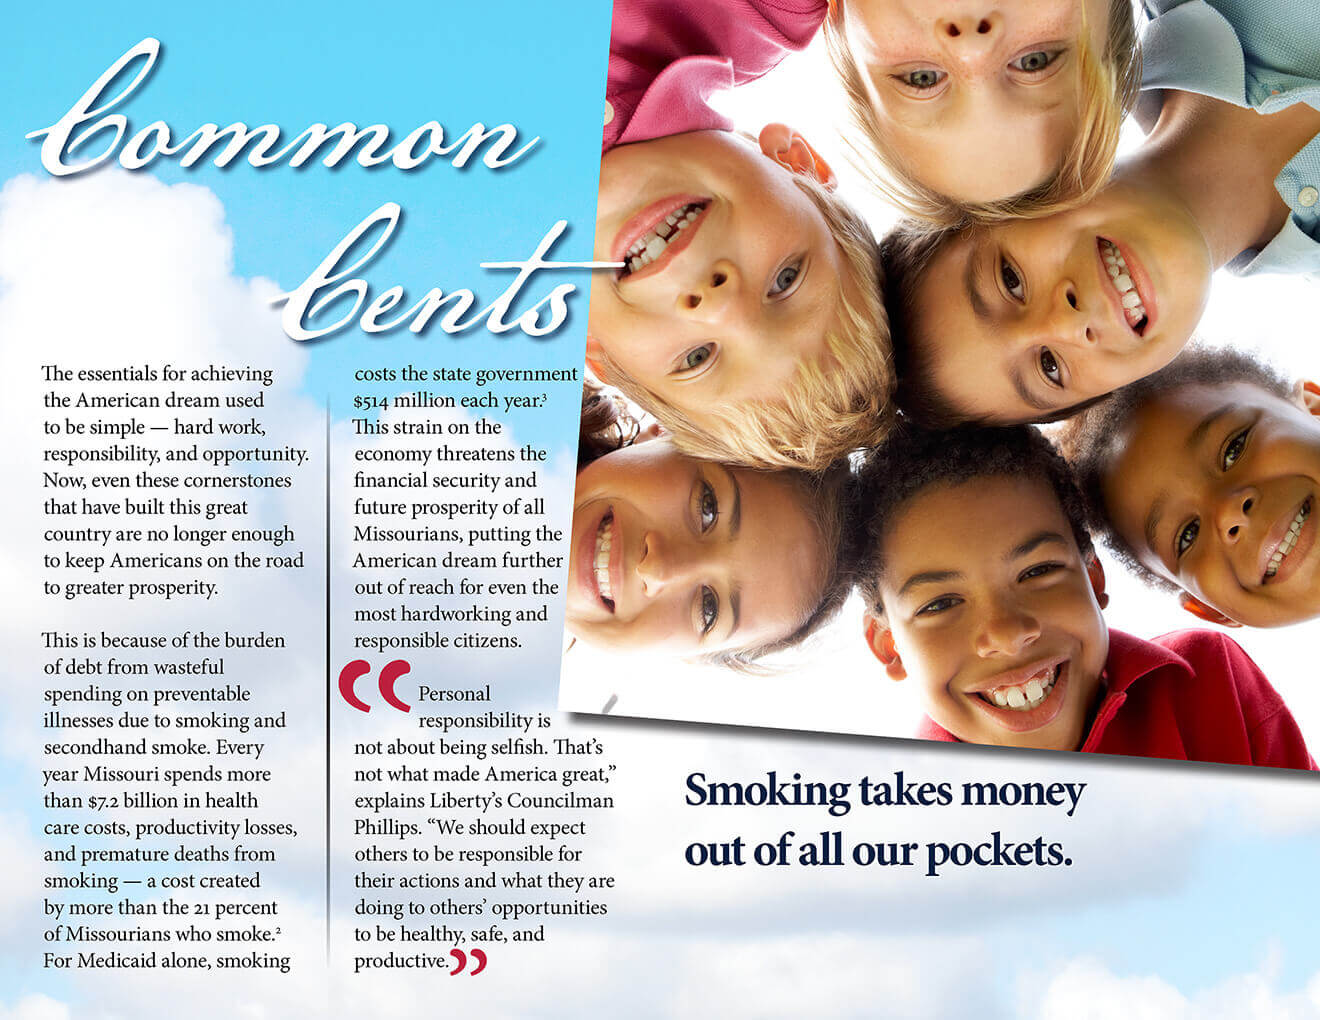 Tobacco Free Missouri Booklet: Common Cents: Smoking takes money out of all our pockets.